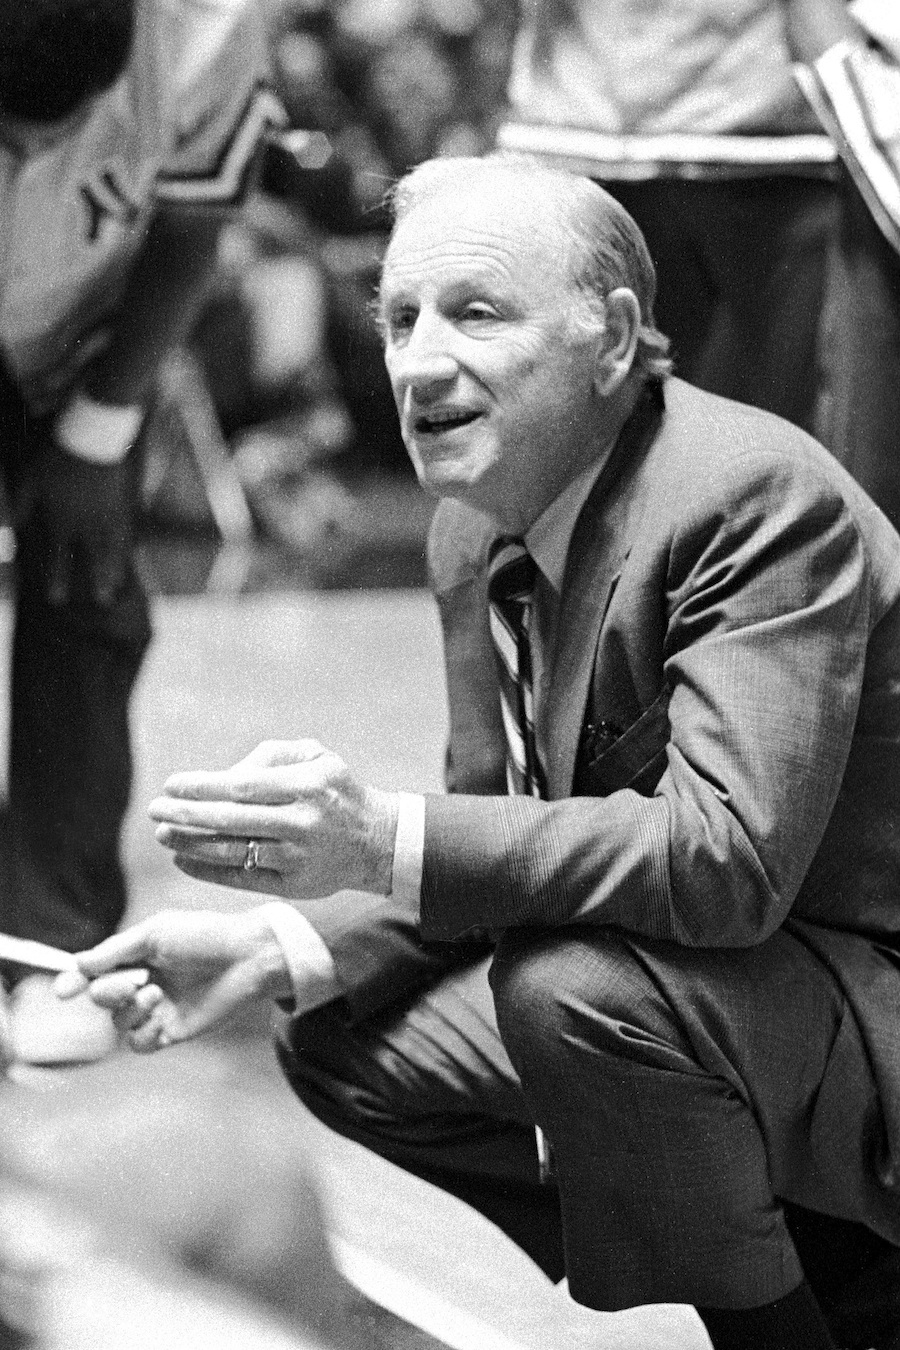 Click photo to download. Caption: Coach Red Holzman, one of the prominent Jewish figures in basketball. Credit: From the lens of George Kalinsky.